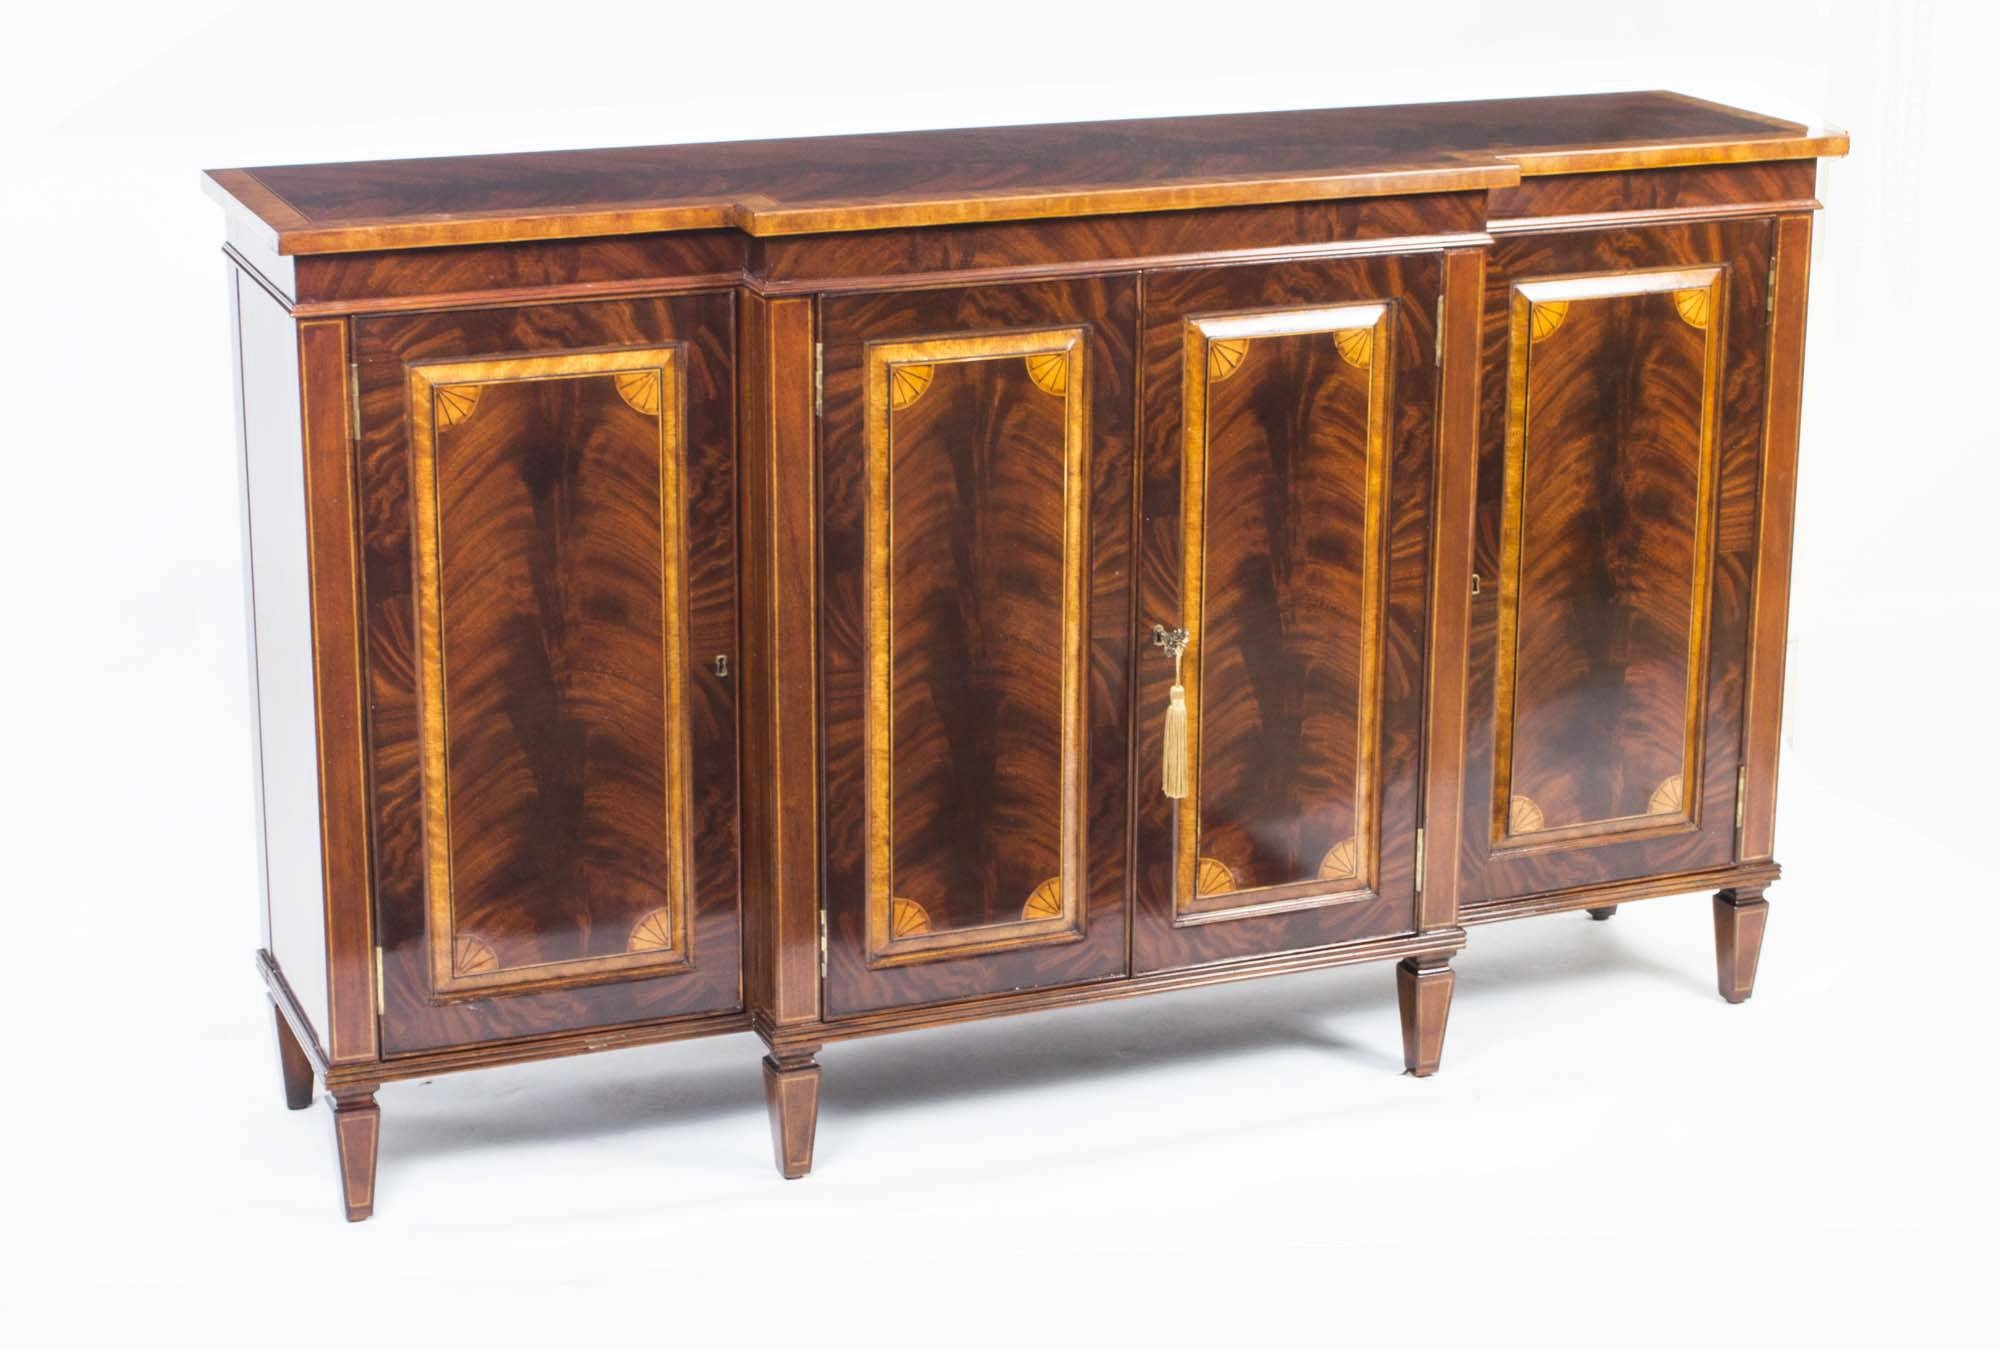 New Credenzas And Sideboards – Bjdgjy Regarding Latest Credenzas And Sideboards (View 6 of 15)